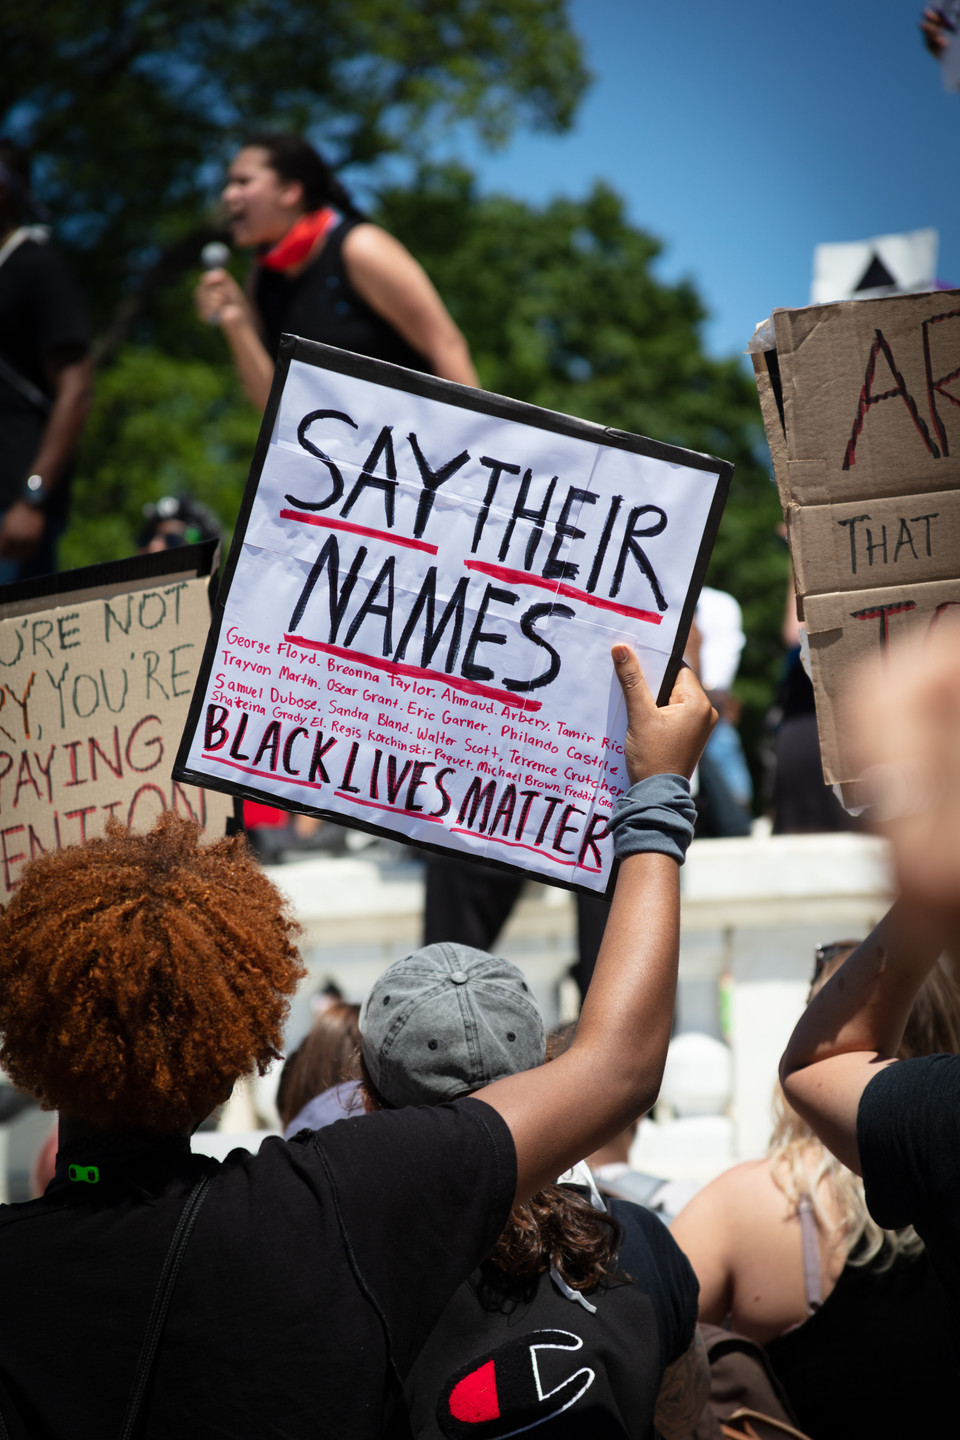 Protesters hold signs expressing their anger and frustration in front of the United States Capitol in Washington, D.C., May 30, 2020.